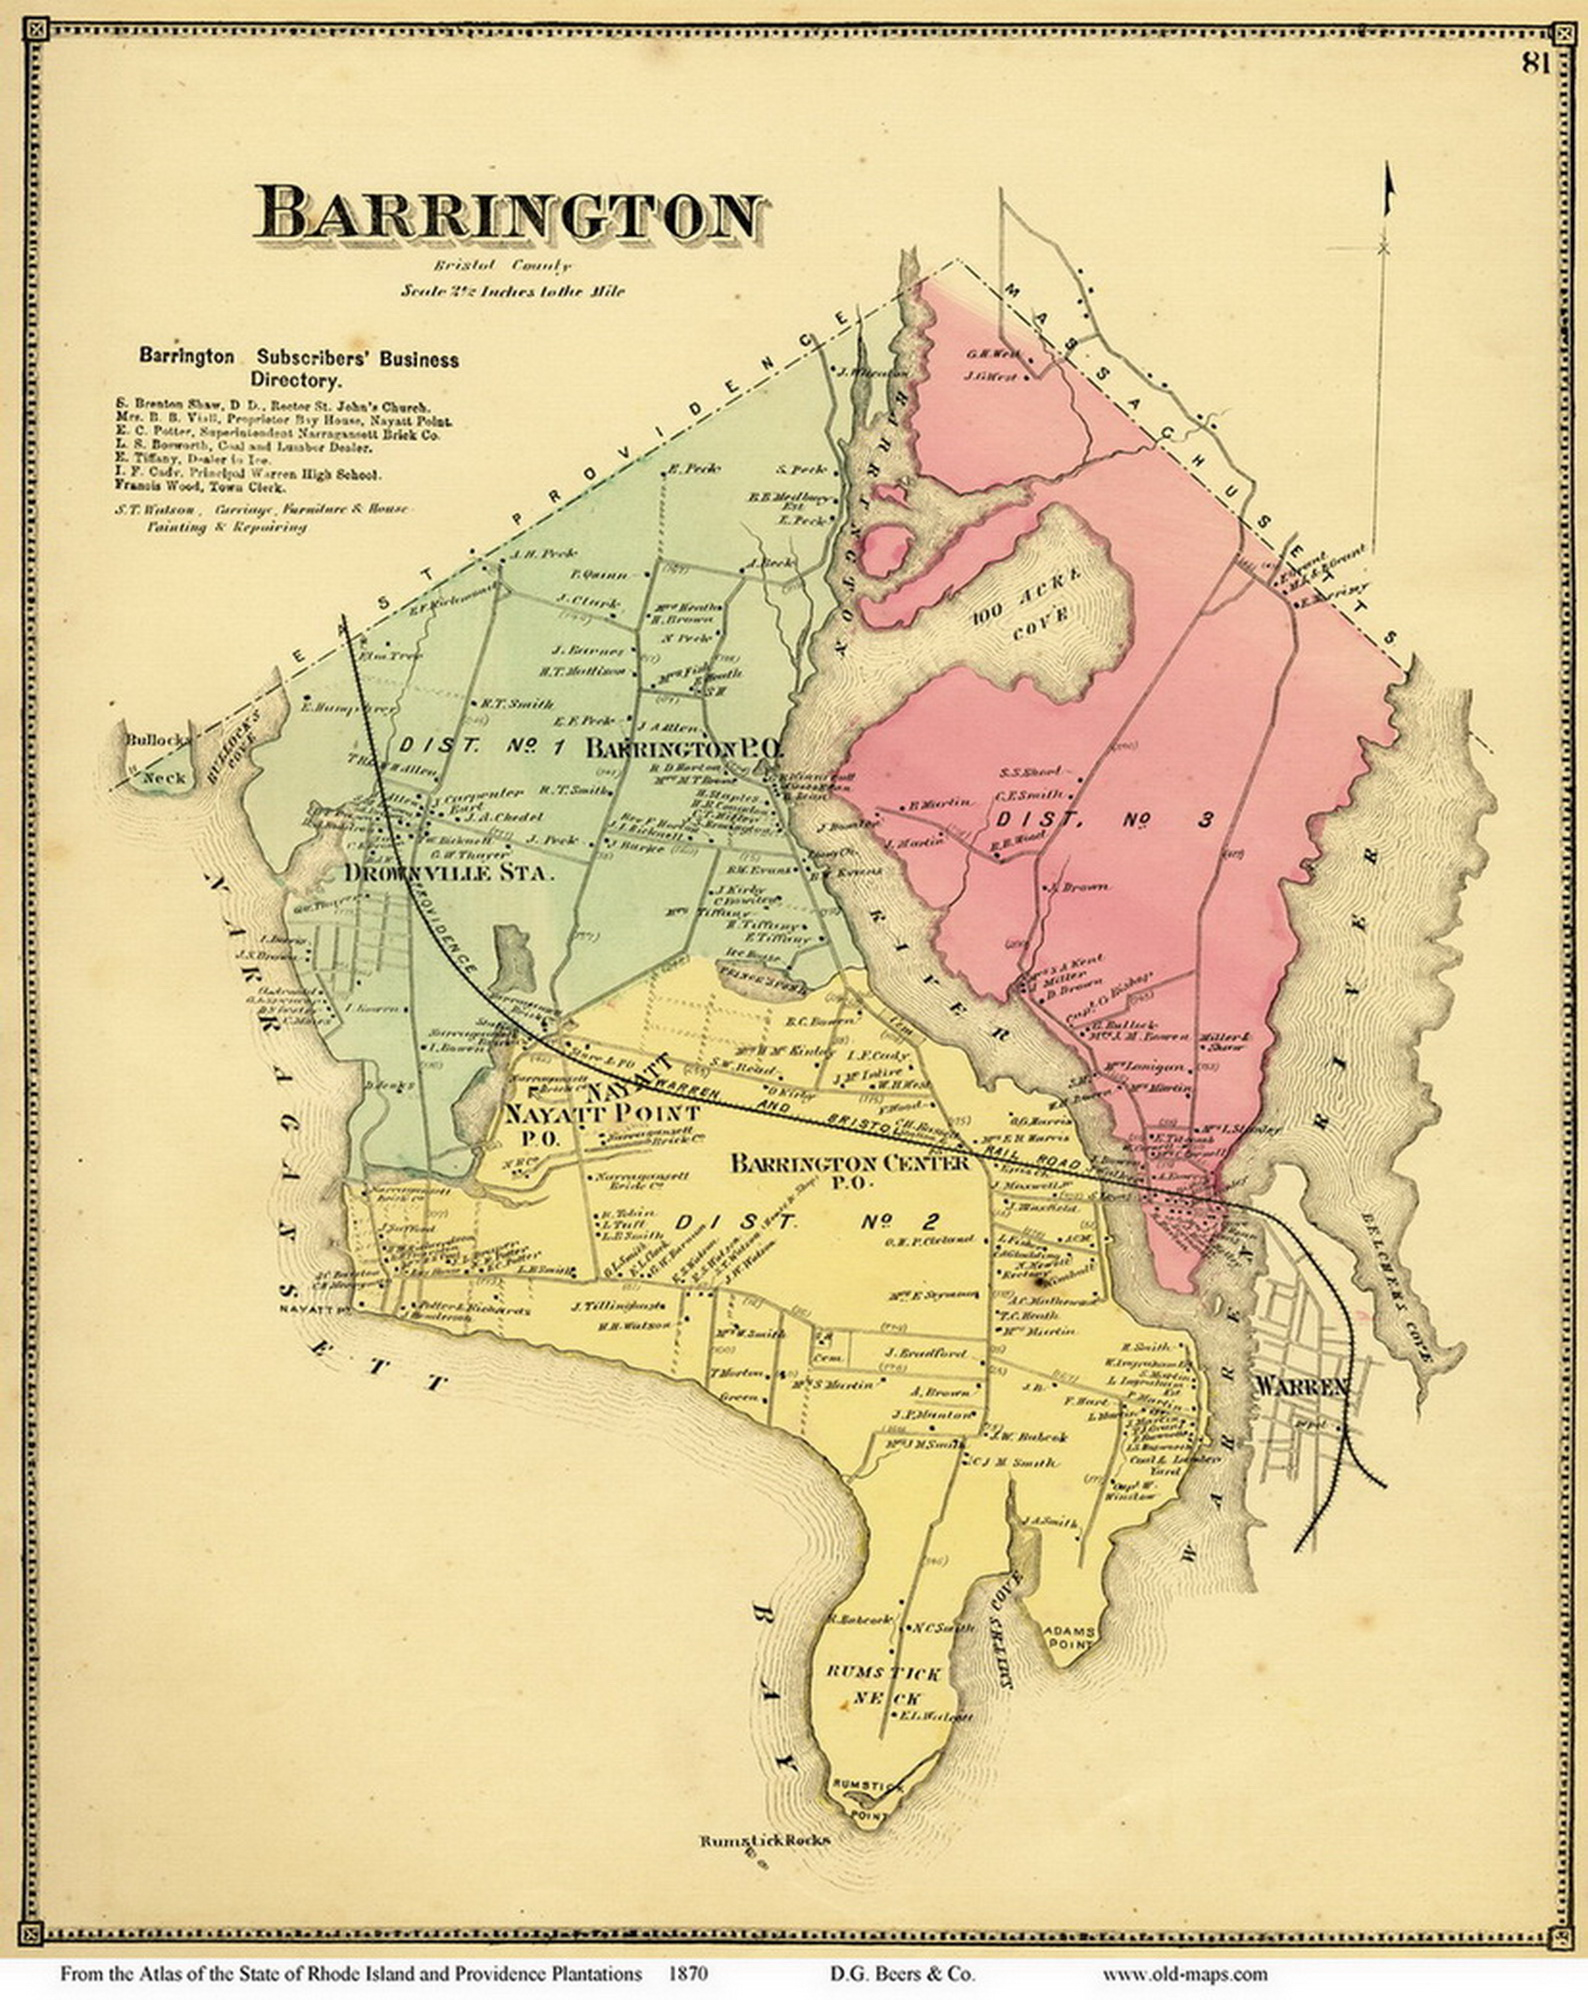 Barrington Rhode Island 1870 Old Town Map Reprint OLD MAPS